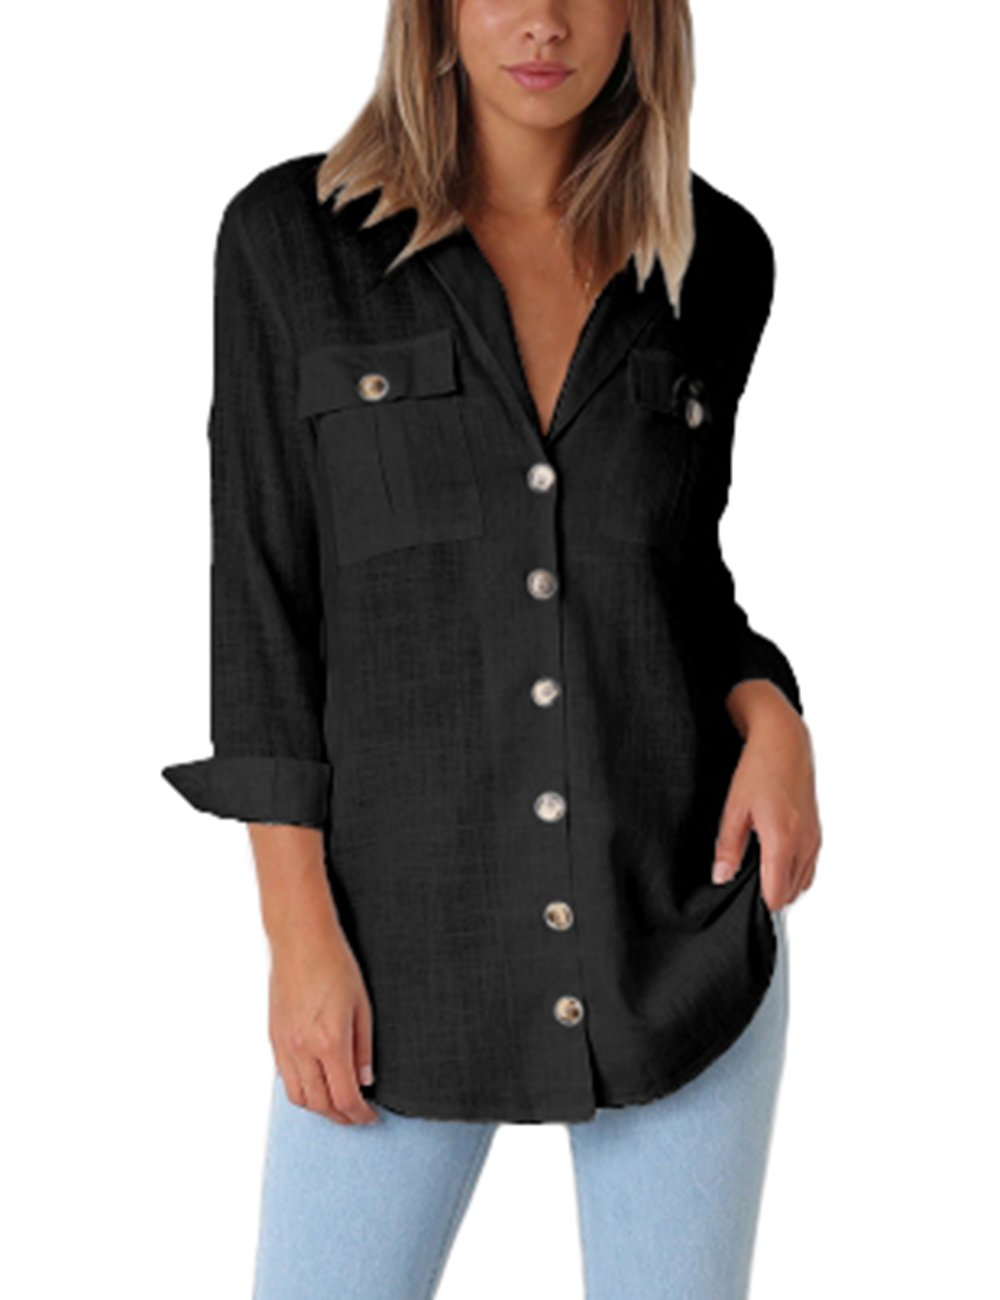 GRAPENT Women's Casual Loose Roll-up Sleeve Blouse Pocket Button Down Shirts Tops L(US 12-14)